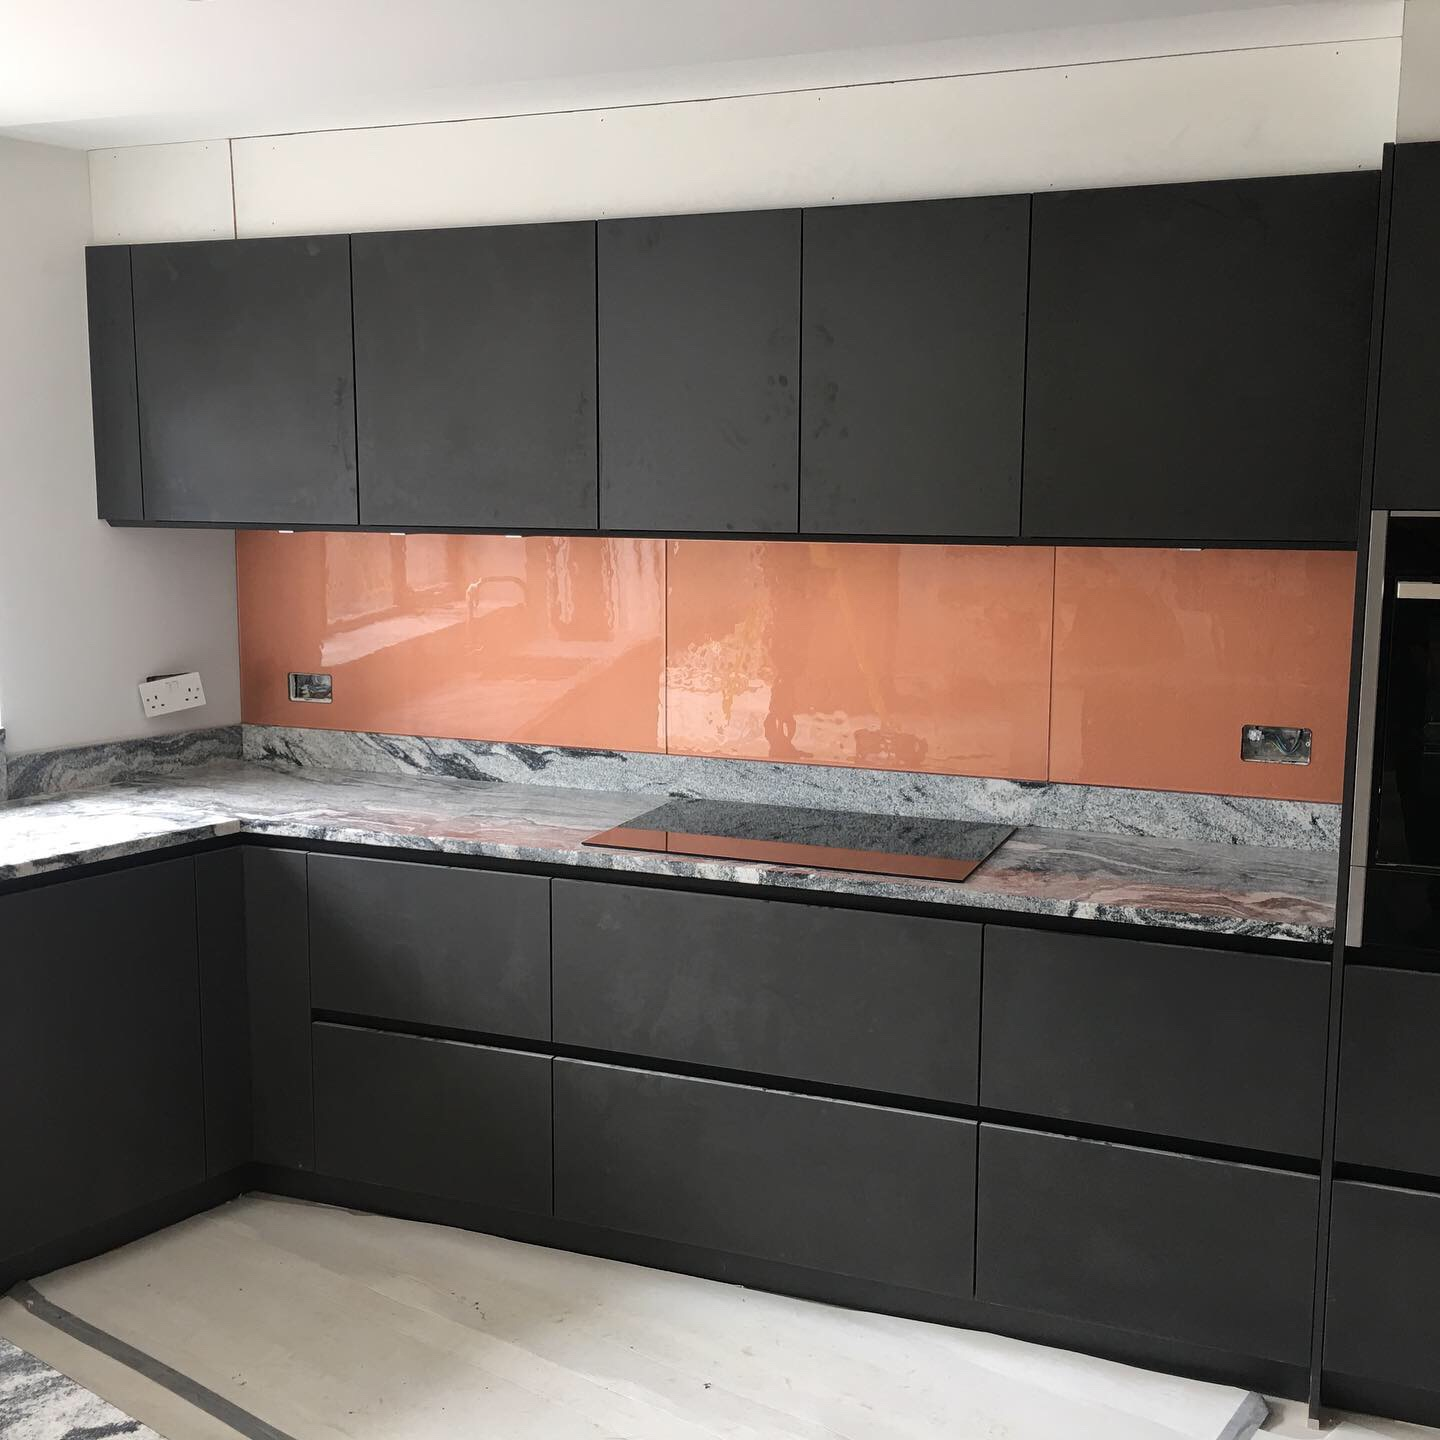 Copper textured - black units